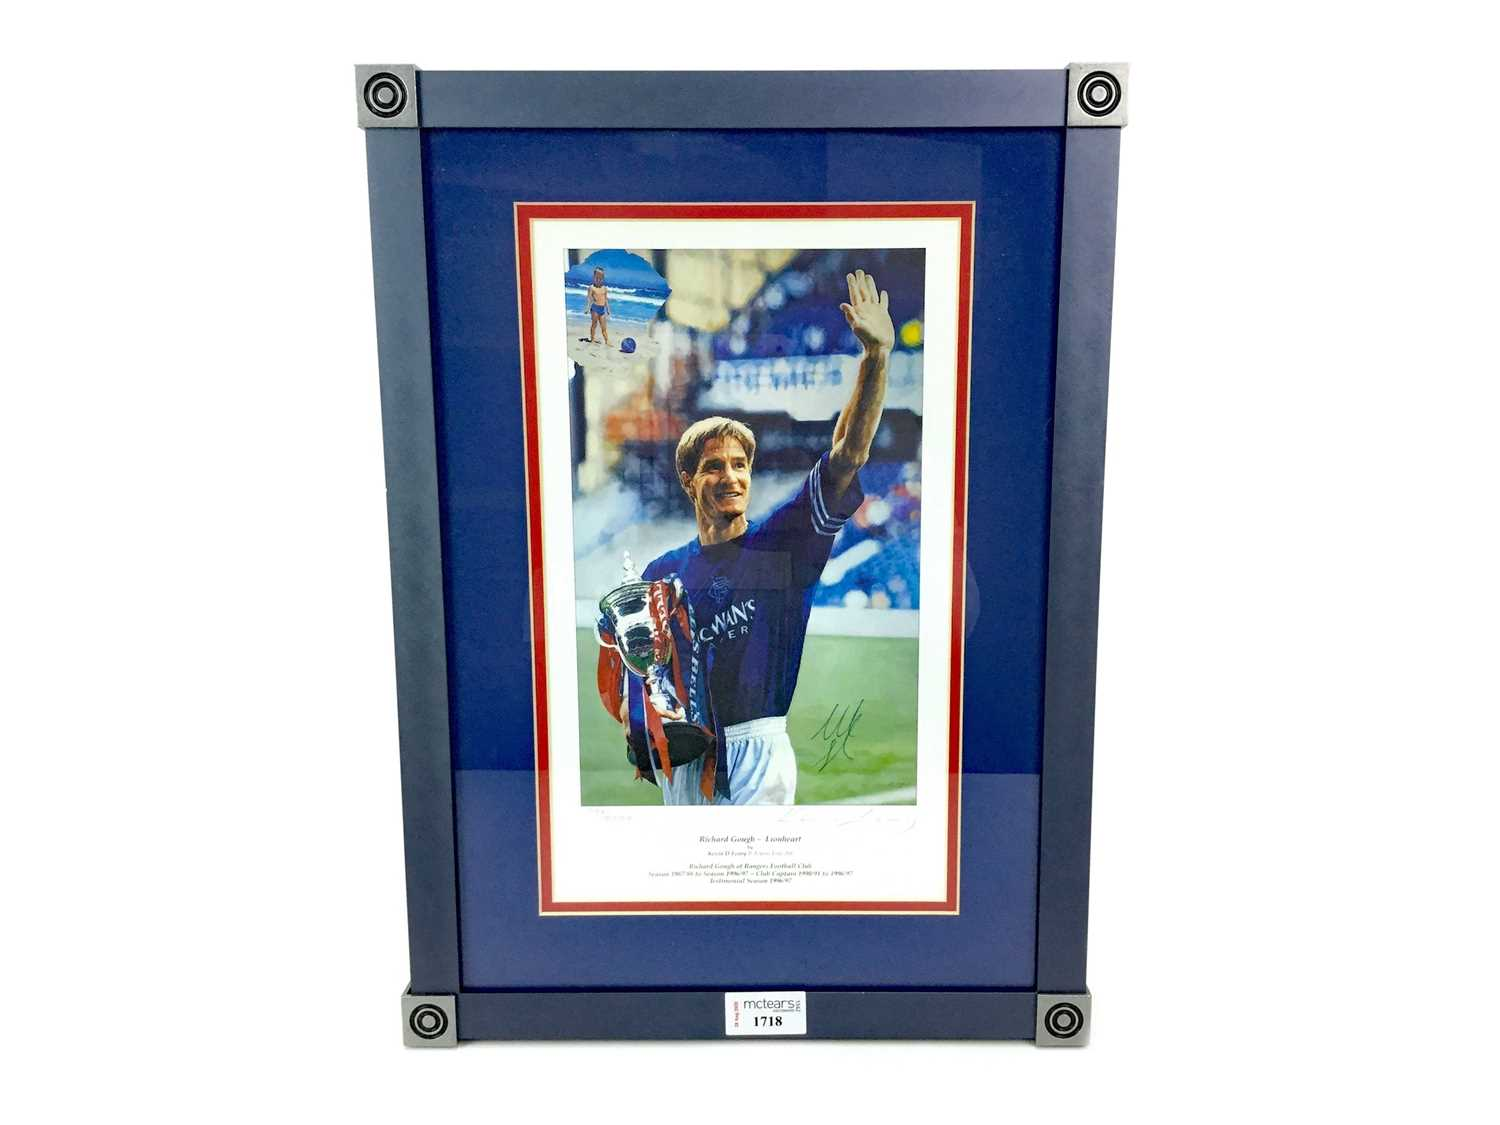 Lot 1718 - A FRAMED PRINT OF RICHARD GOUGH BY KEVIN LEARY, SIGNED BY THE PLAYER